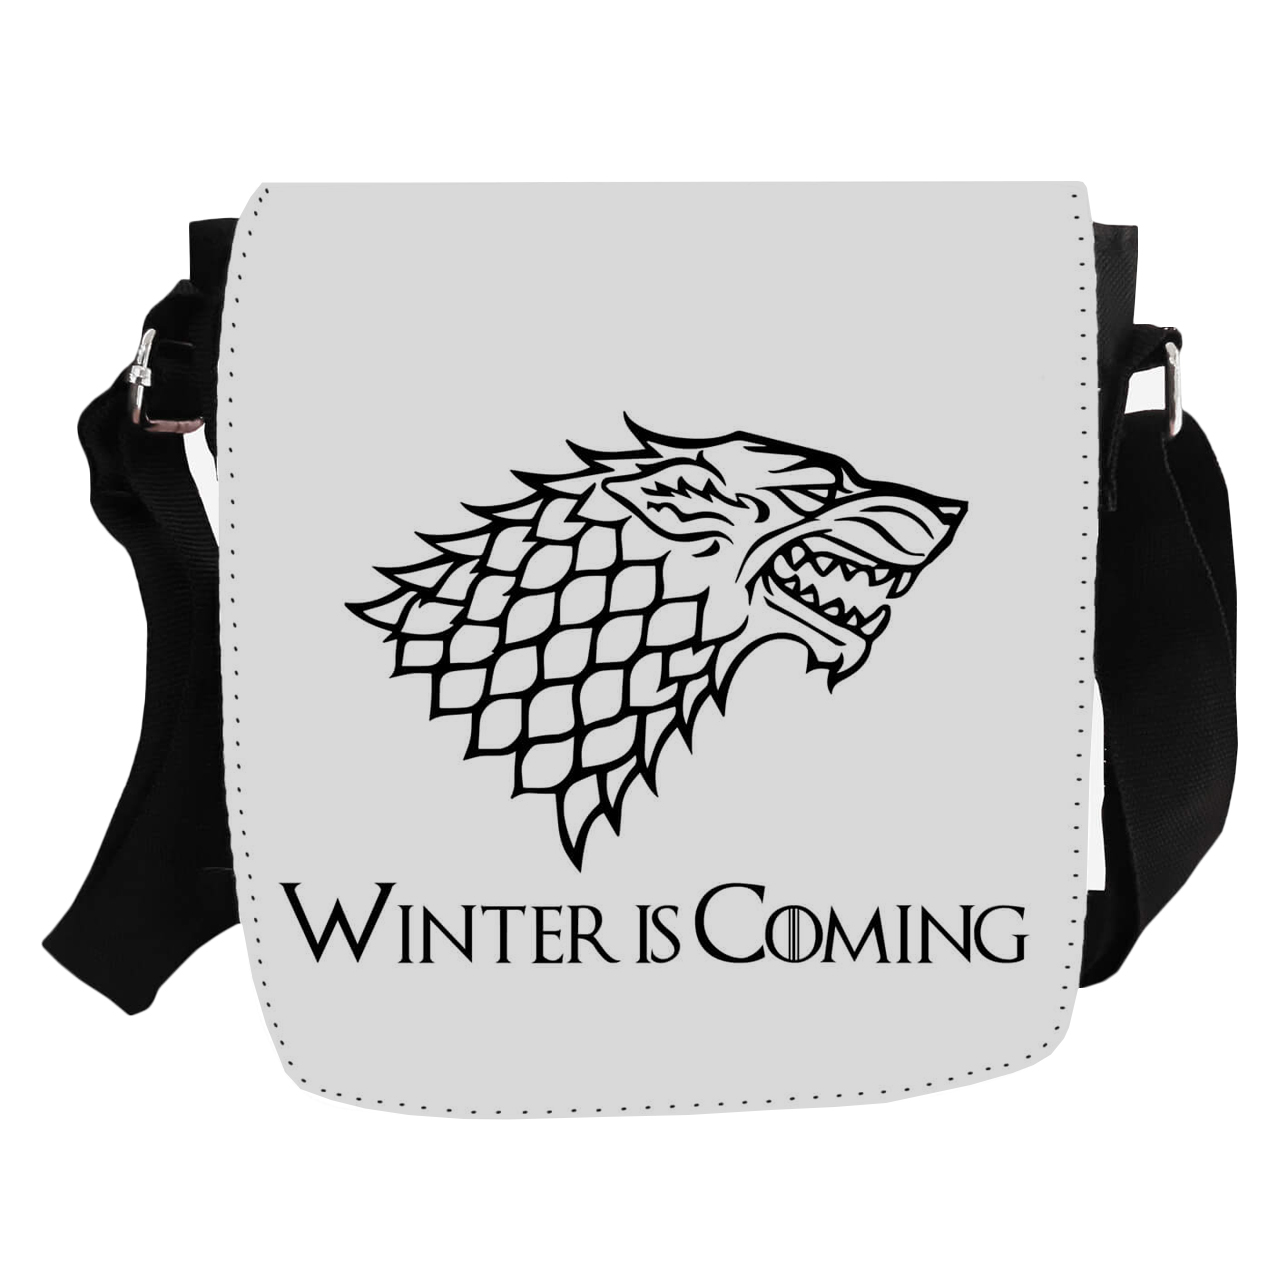 کیف دوشی طرح game of thrones مدل KP-193